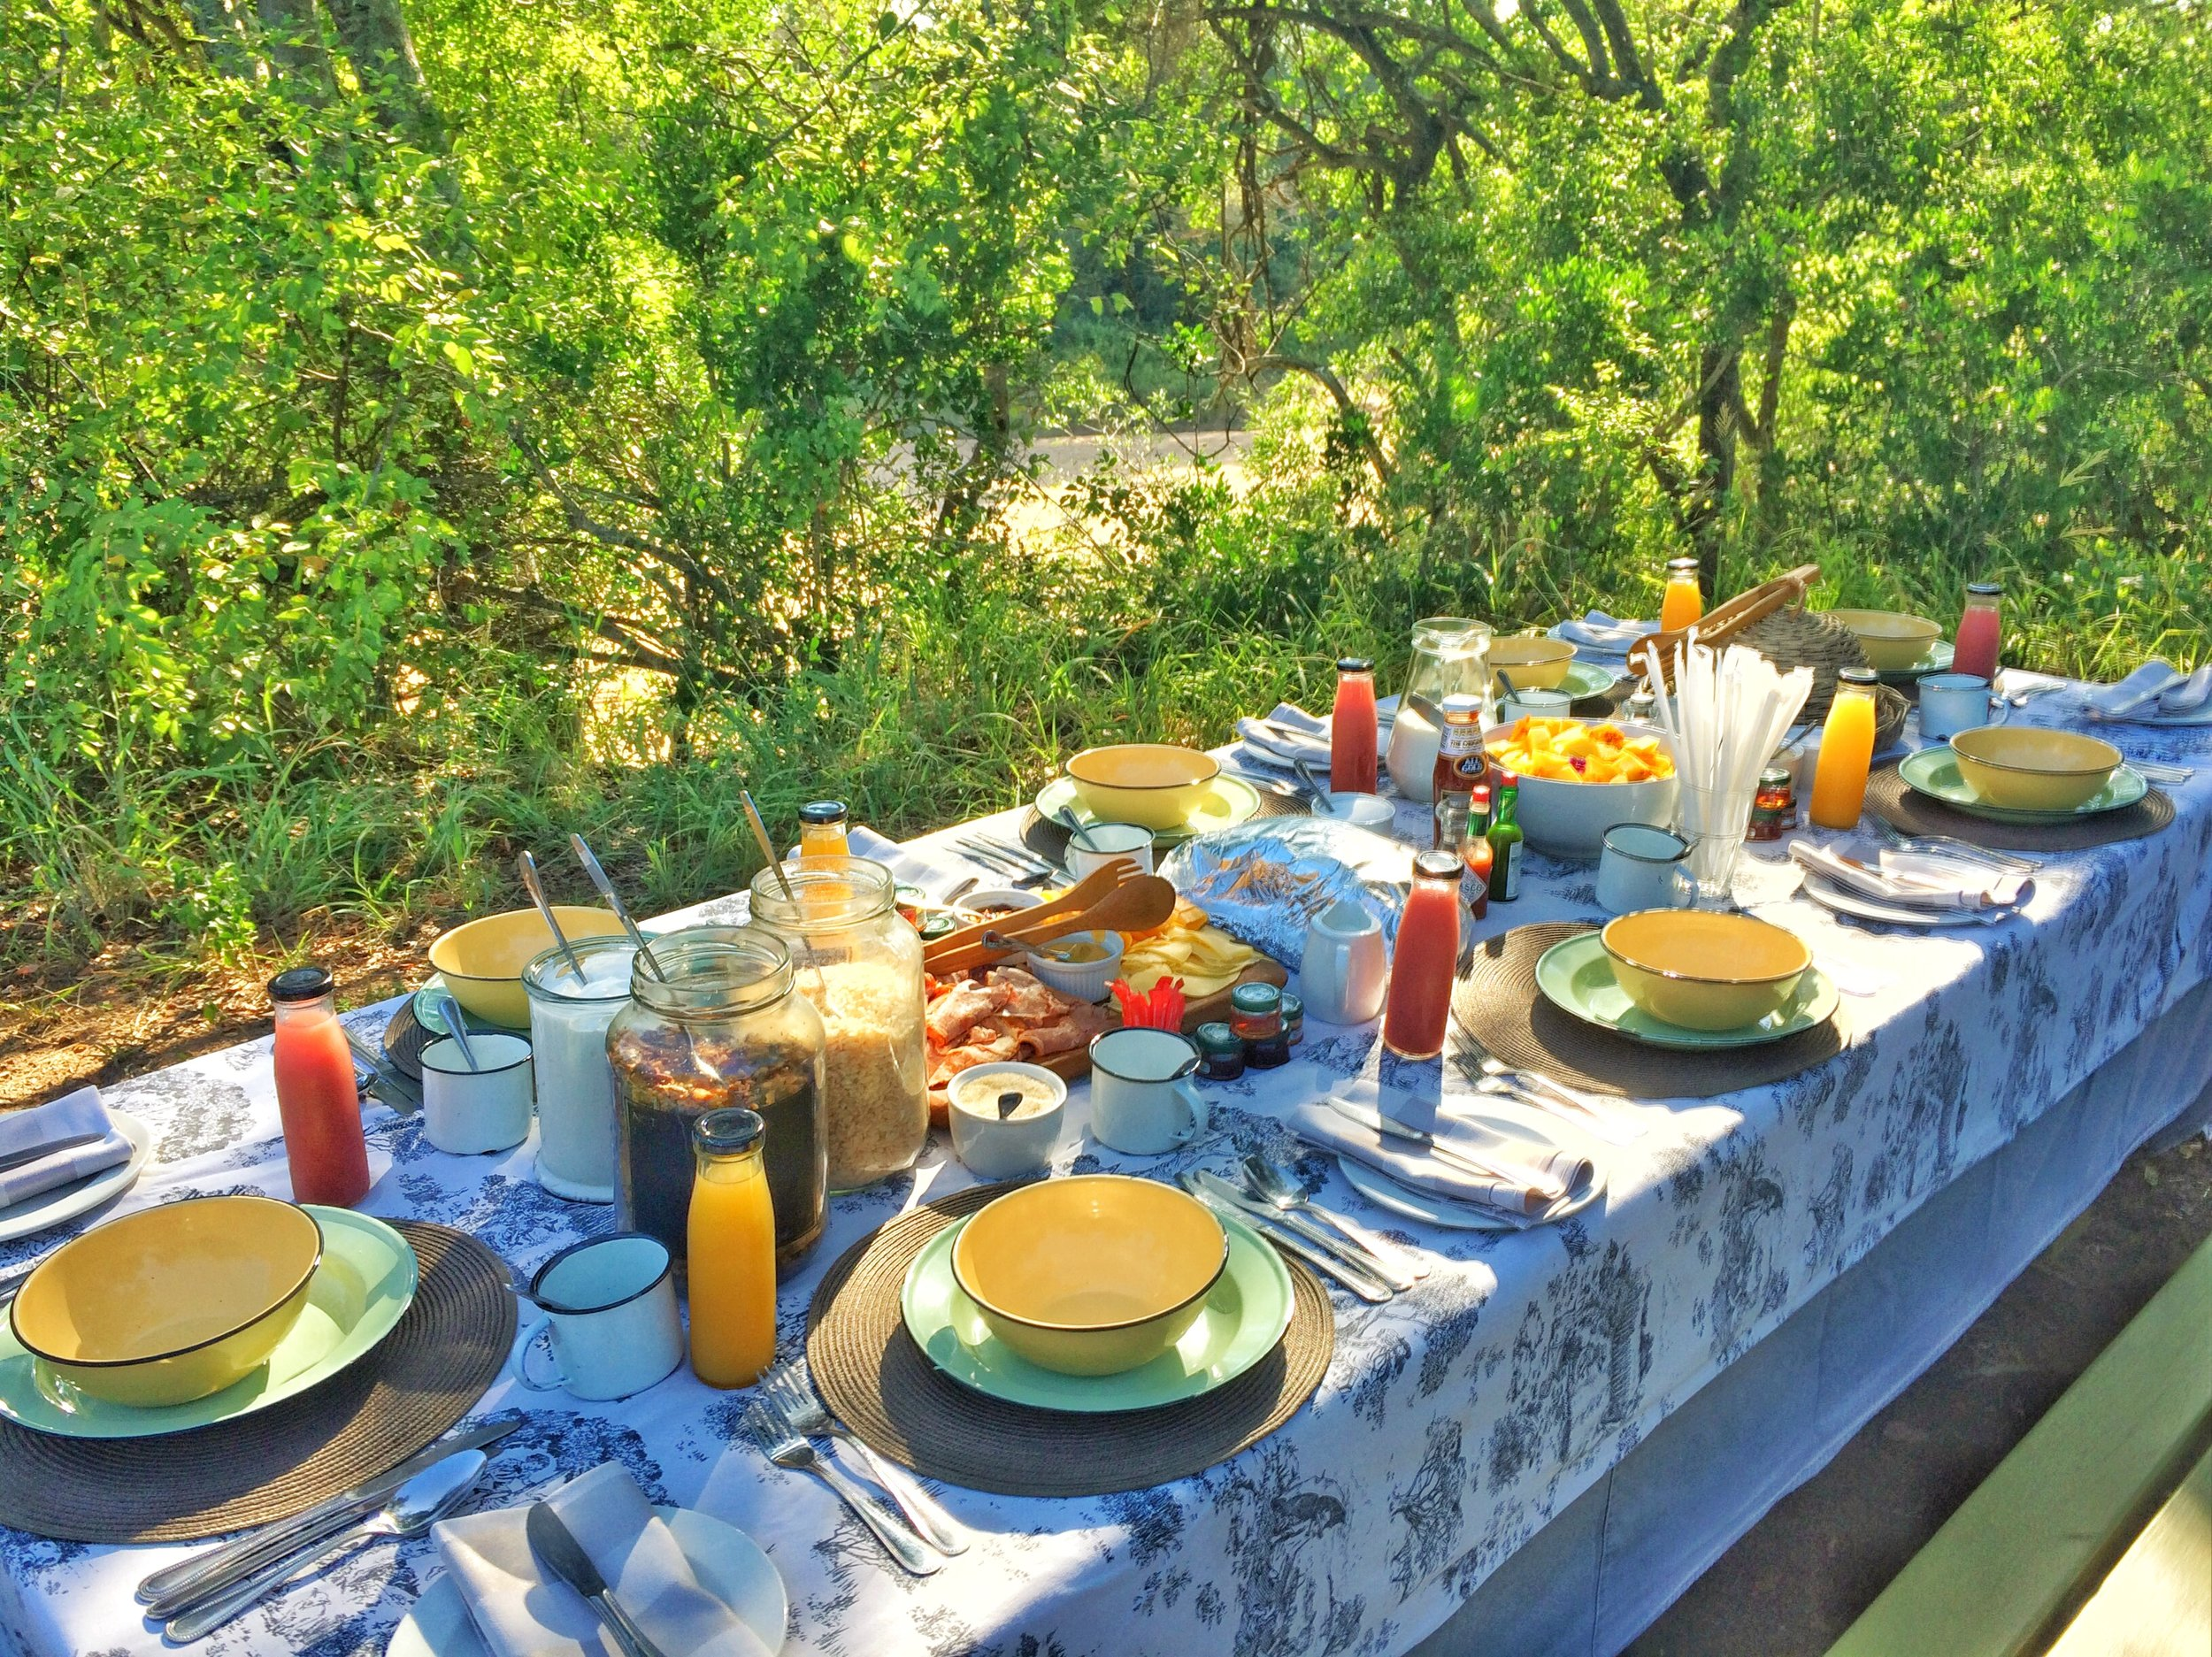 On one of the mornings, we were surprised with an incredible breakfast setup in the middle of the safari.